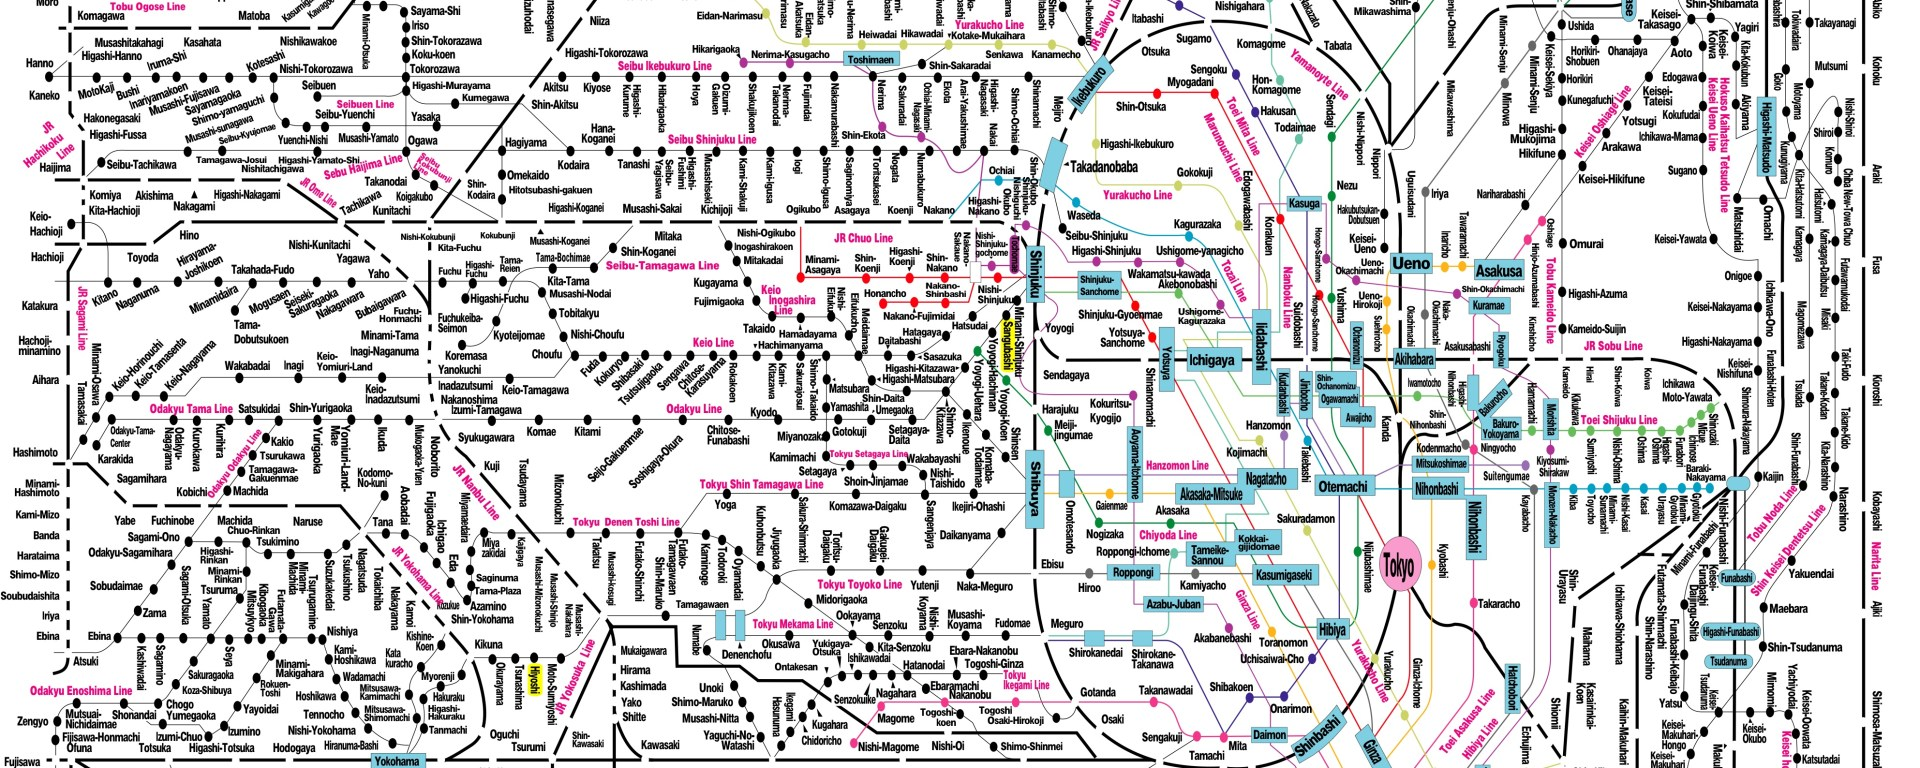 The Tokyo train system is probably the best in the world. This may not even be a complete map (or at least the JR Lines don't seem to be labeled indivdually....)